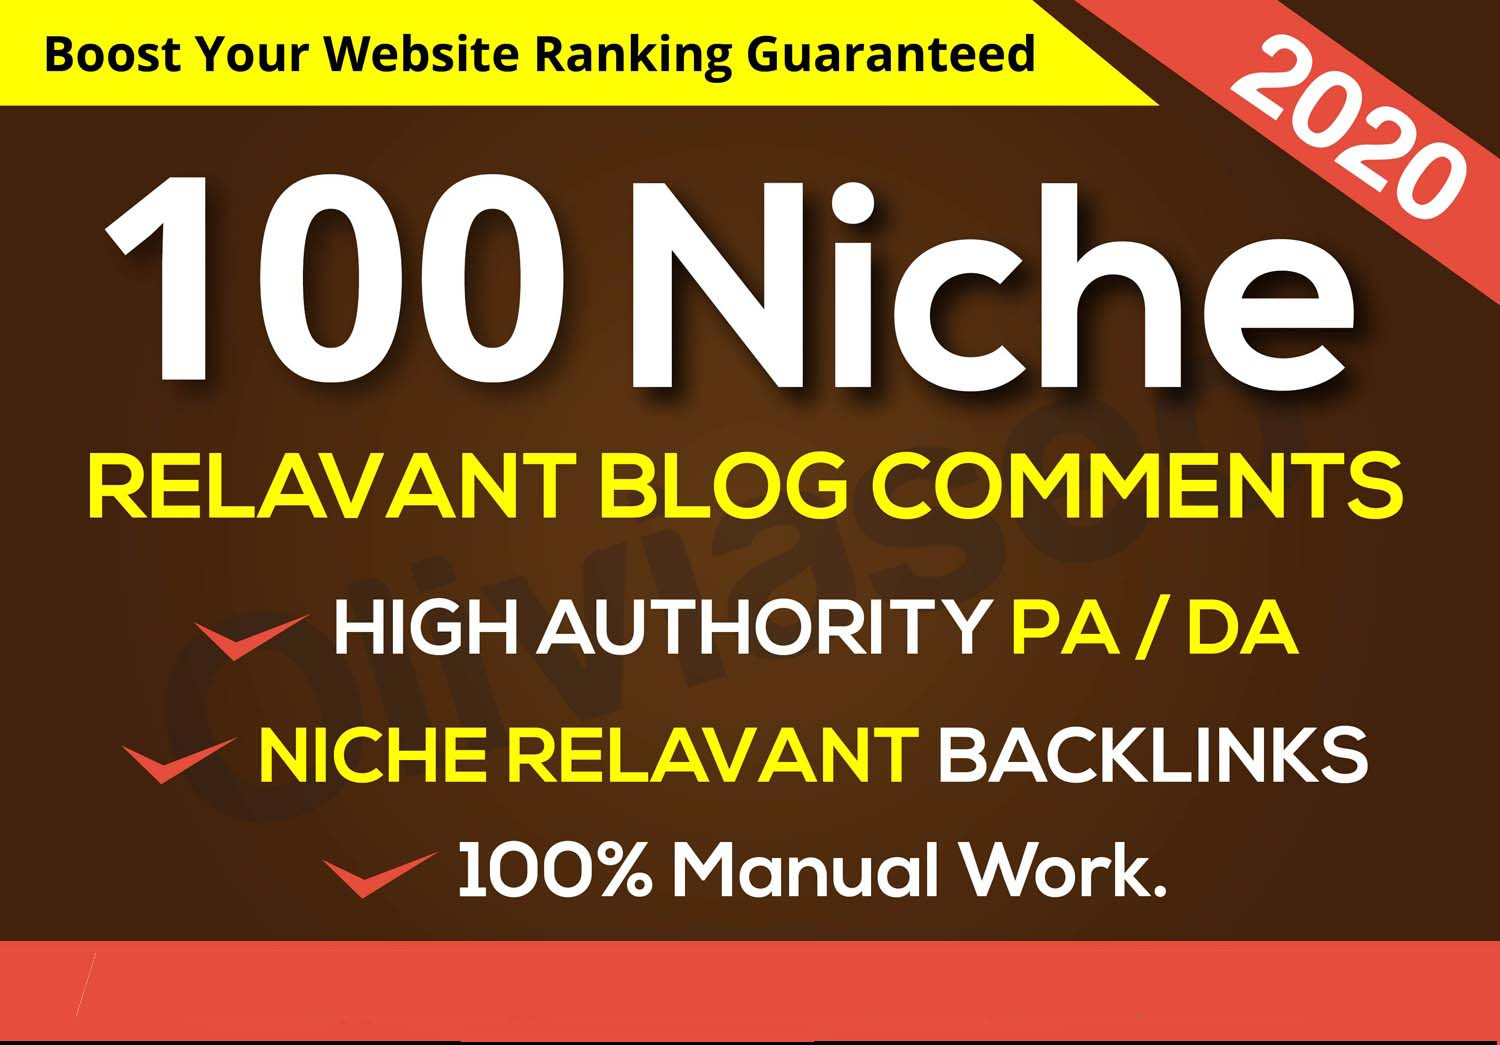 I will create 100 niche relevant blog comments